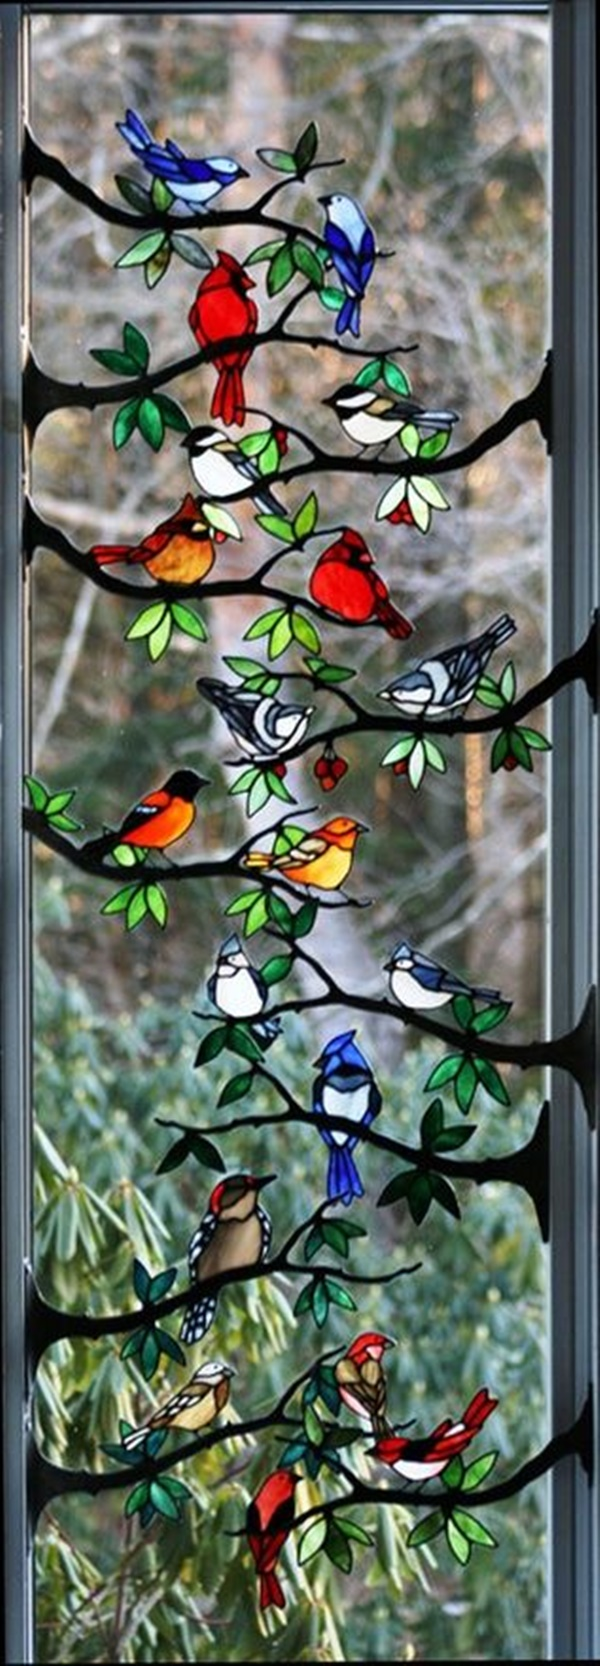 30 Window Glass Painting Ideas for Beginners 12